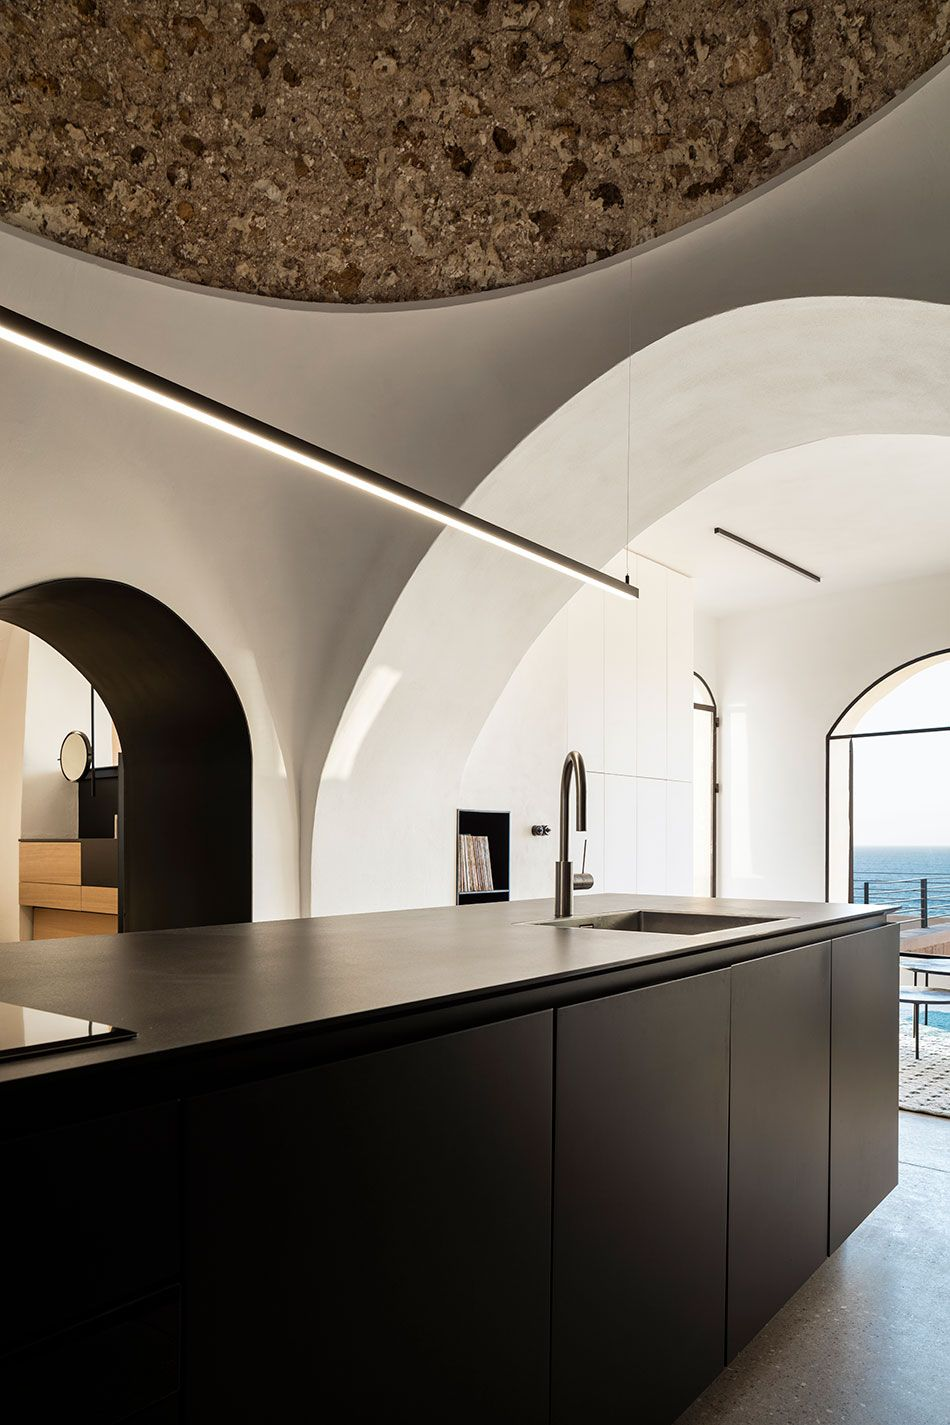 Pitsou kedem architects has refurbished a historic apartment in jaffa the ancient port city located south of tel avivs urban center in israel